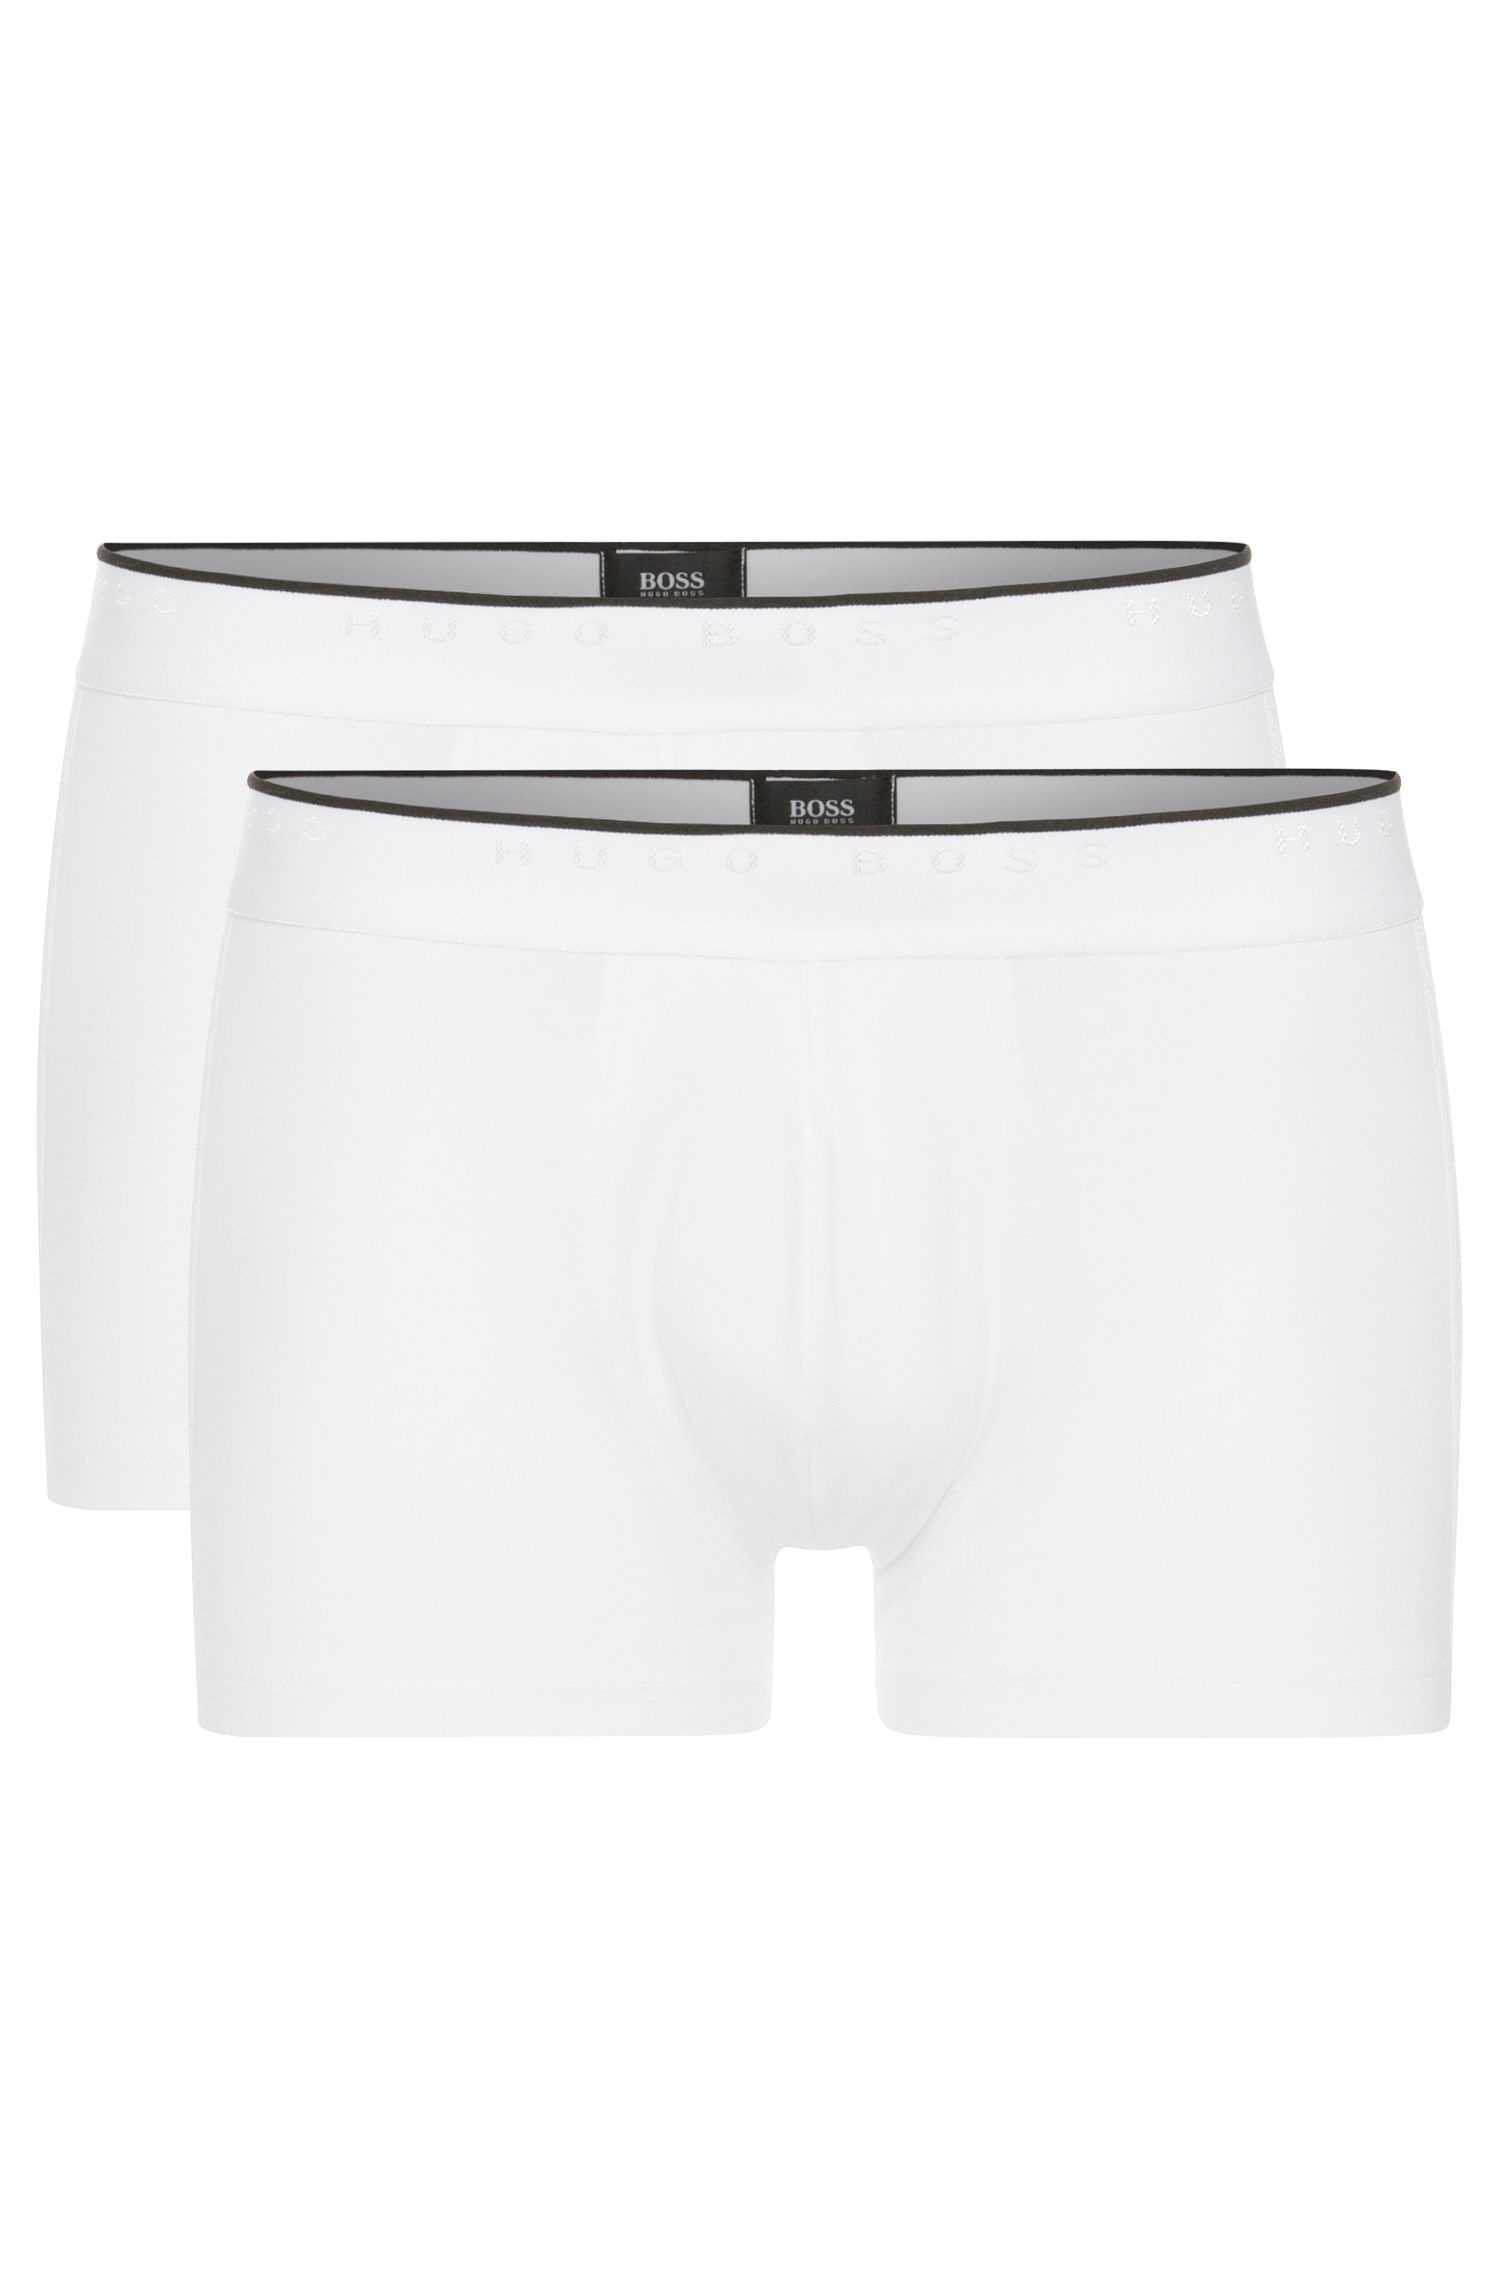 Regular-rise boxer shorts in stretch cotton by BOSS Menswear